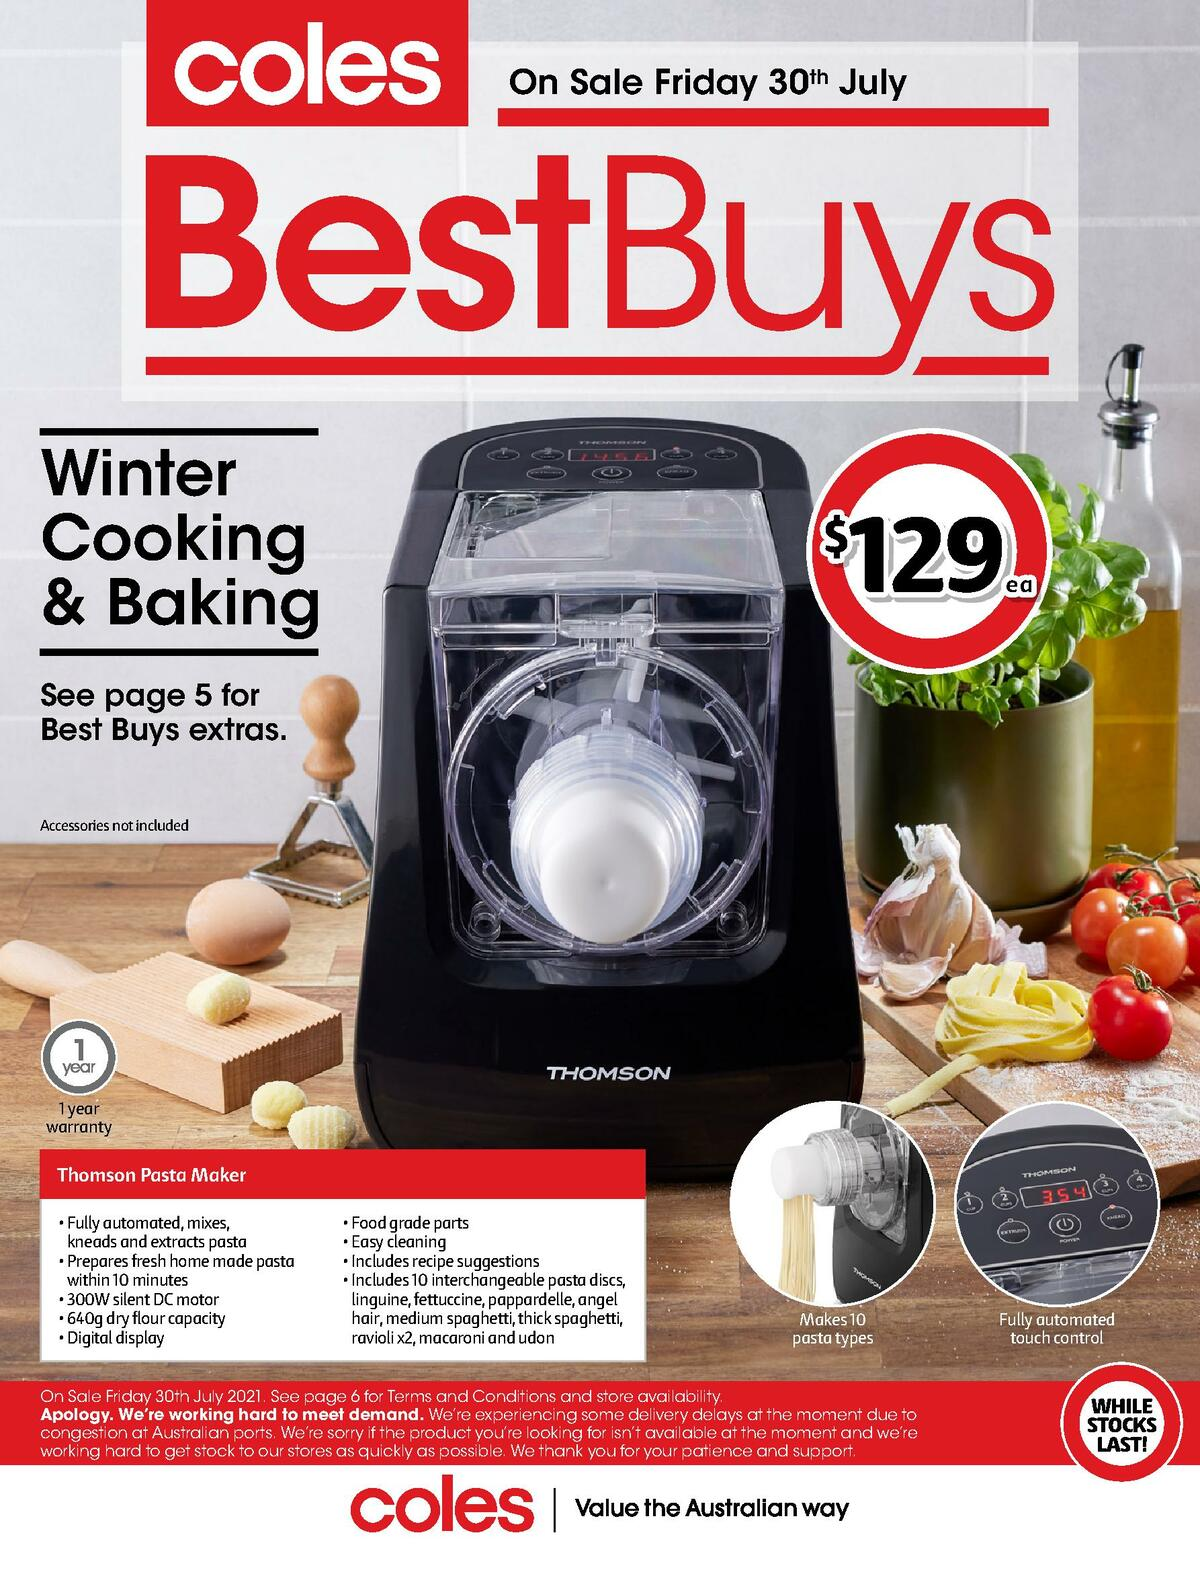 Coles Best Buys - Winter Cooking & Baking Catalogues from July 30